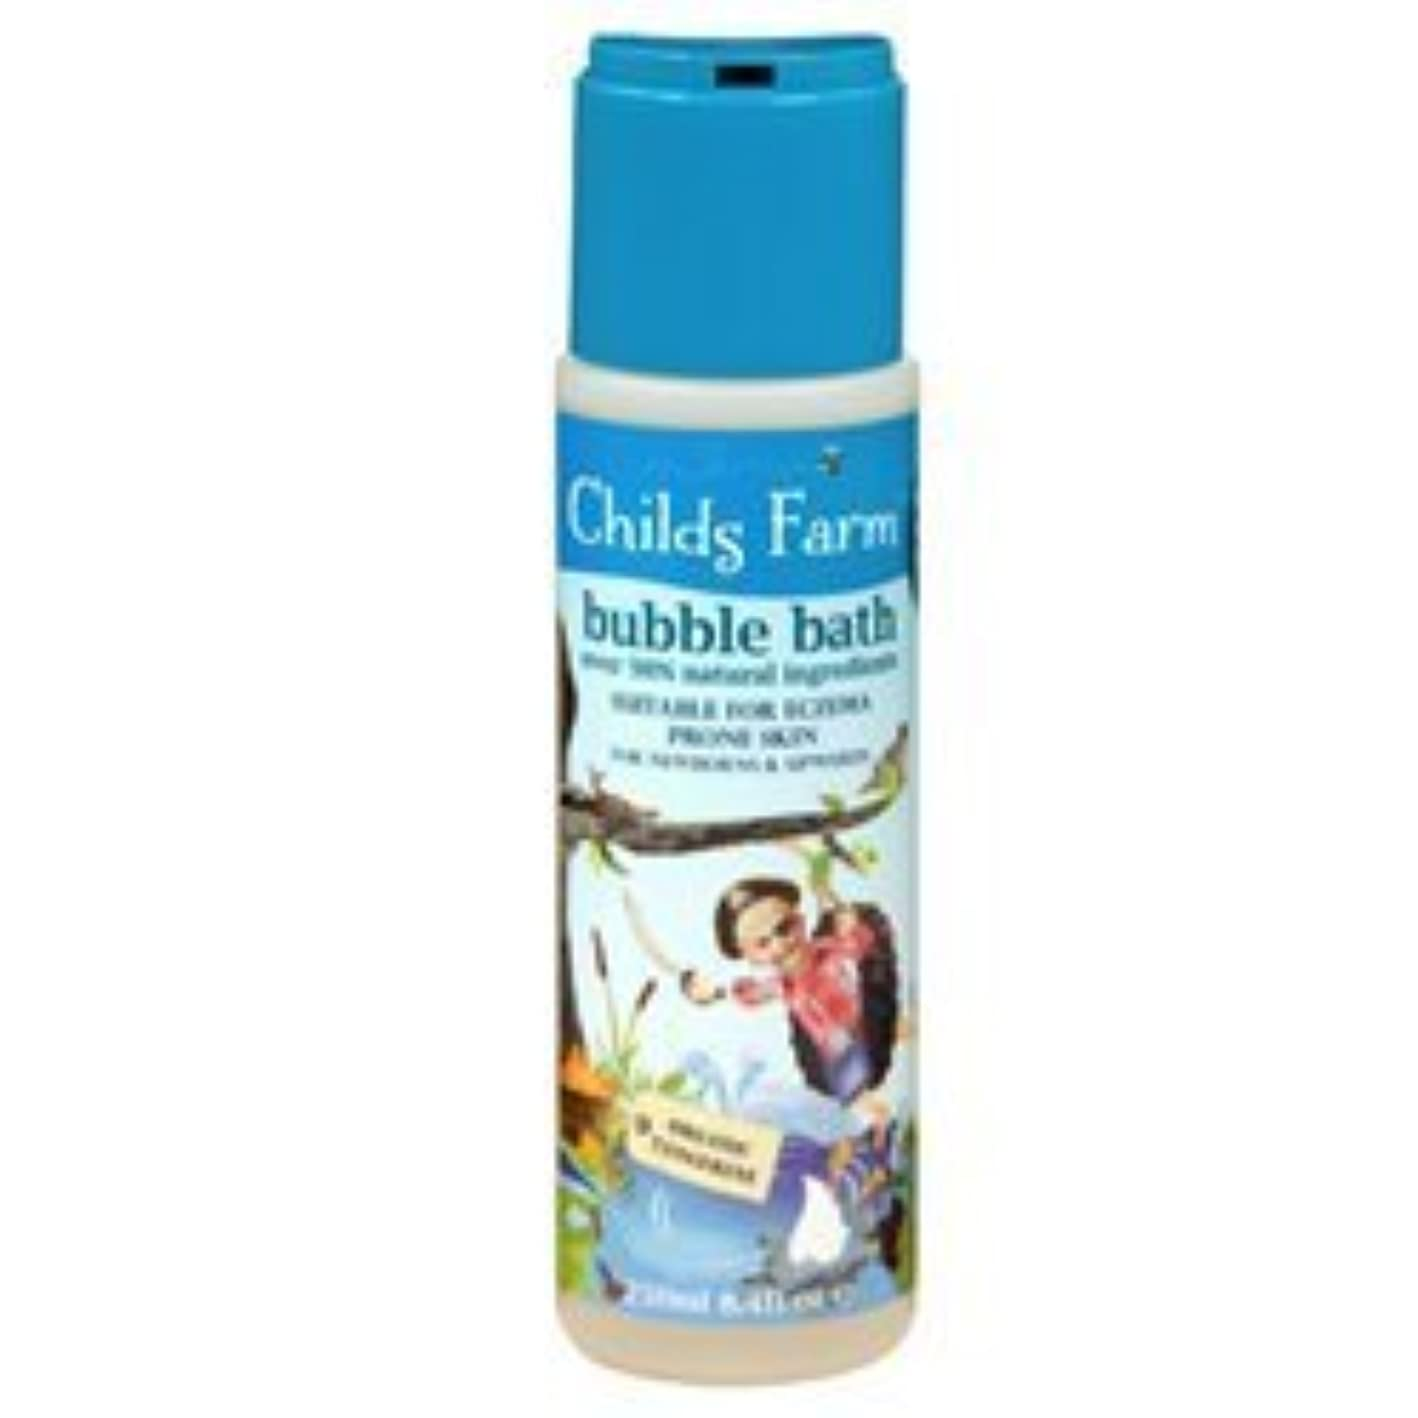 機会暖かく仲間、同僚Childs Farm Bubble bath for Buccaneers 250ml x 1 by Childs Farm [並行輸入品]